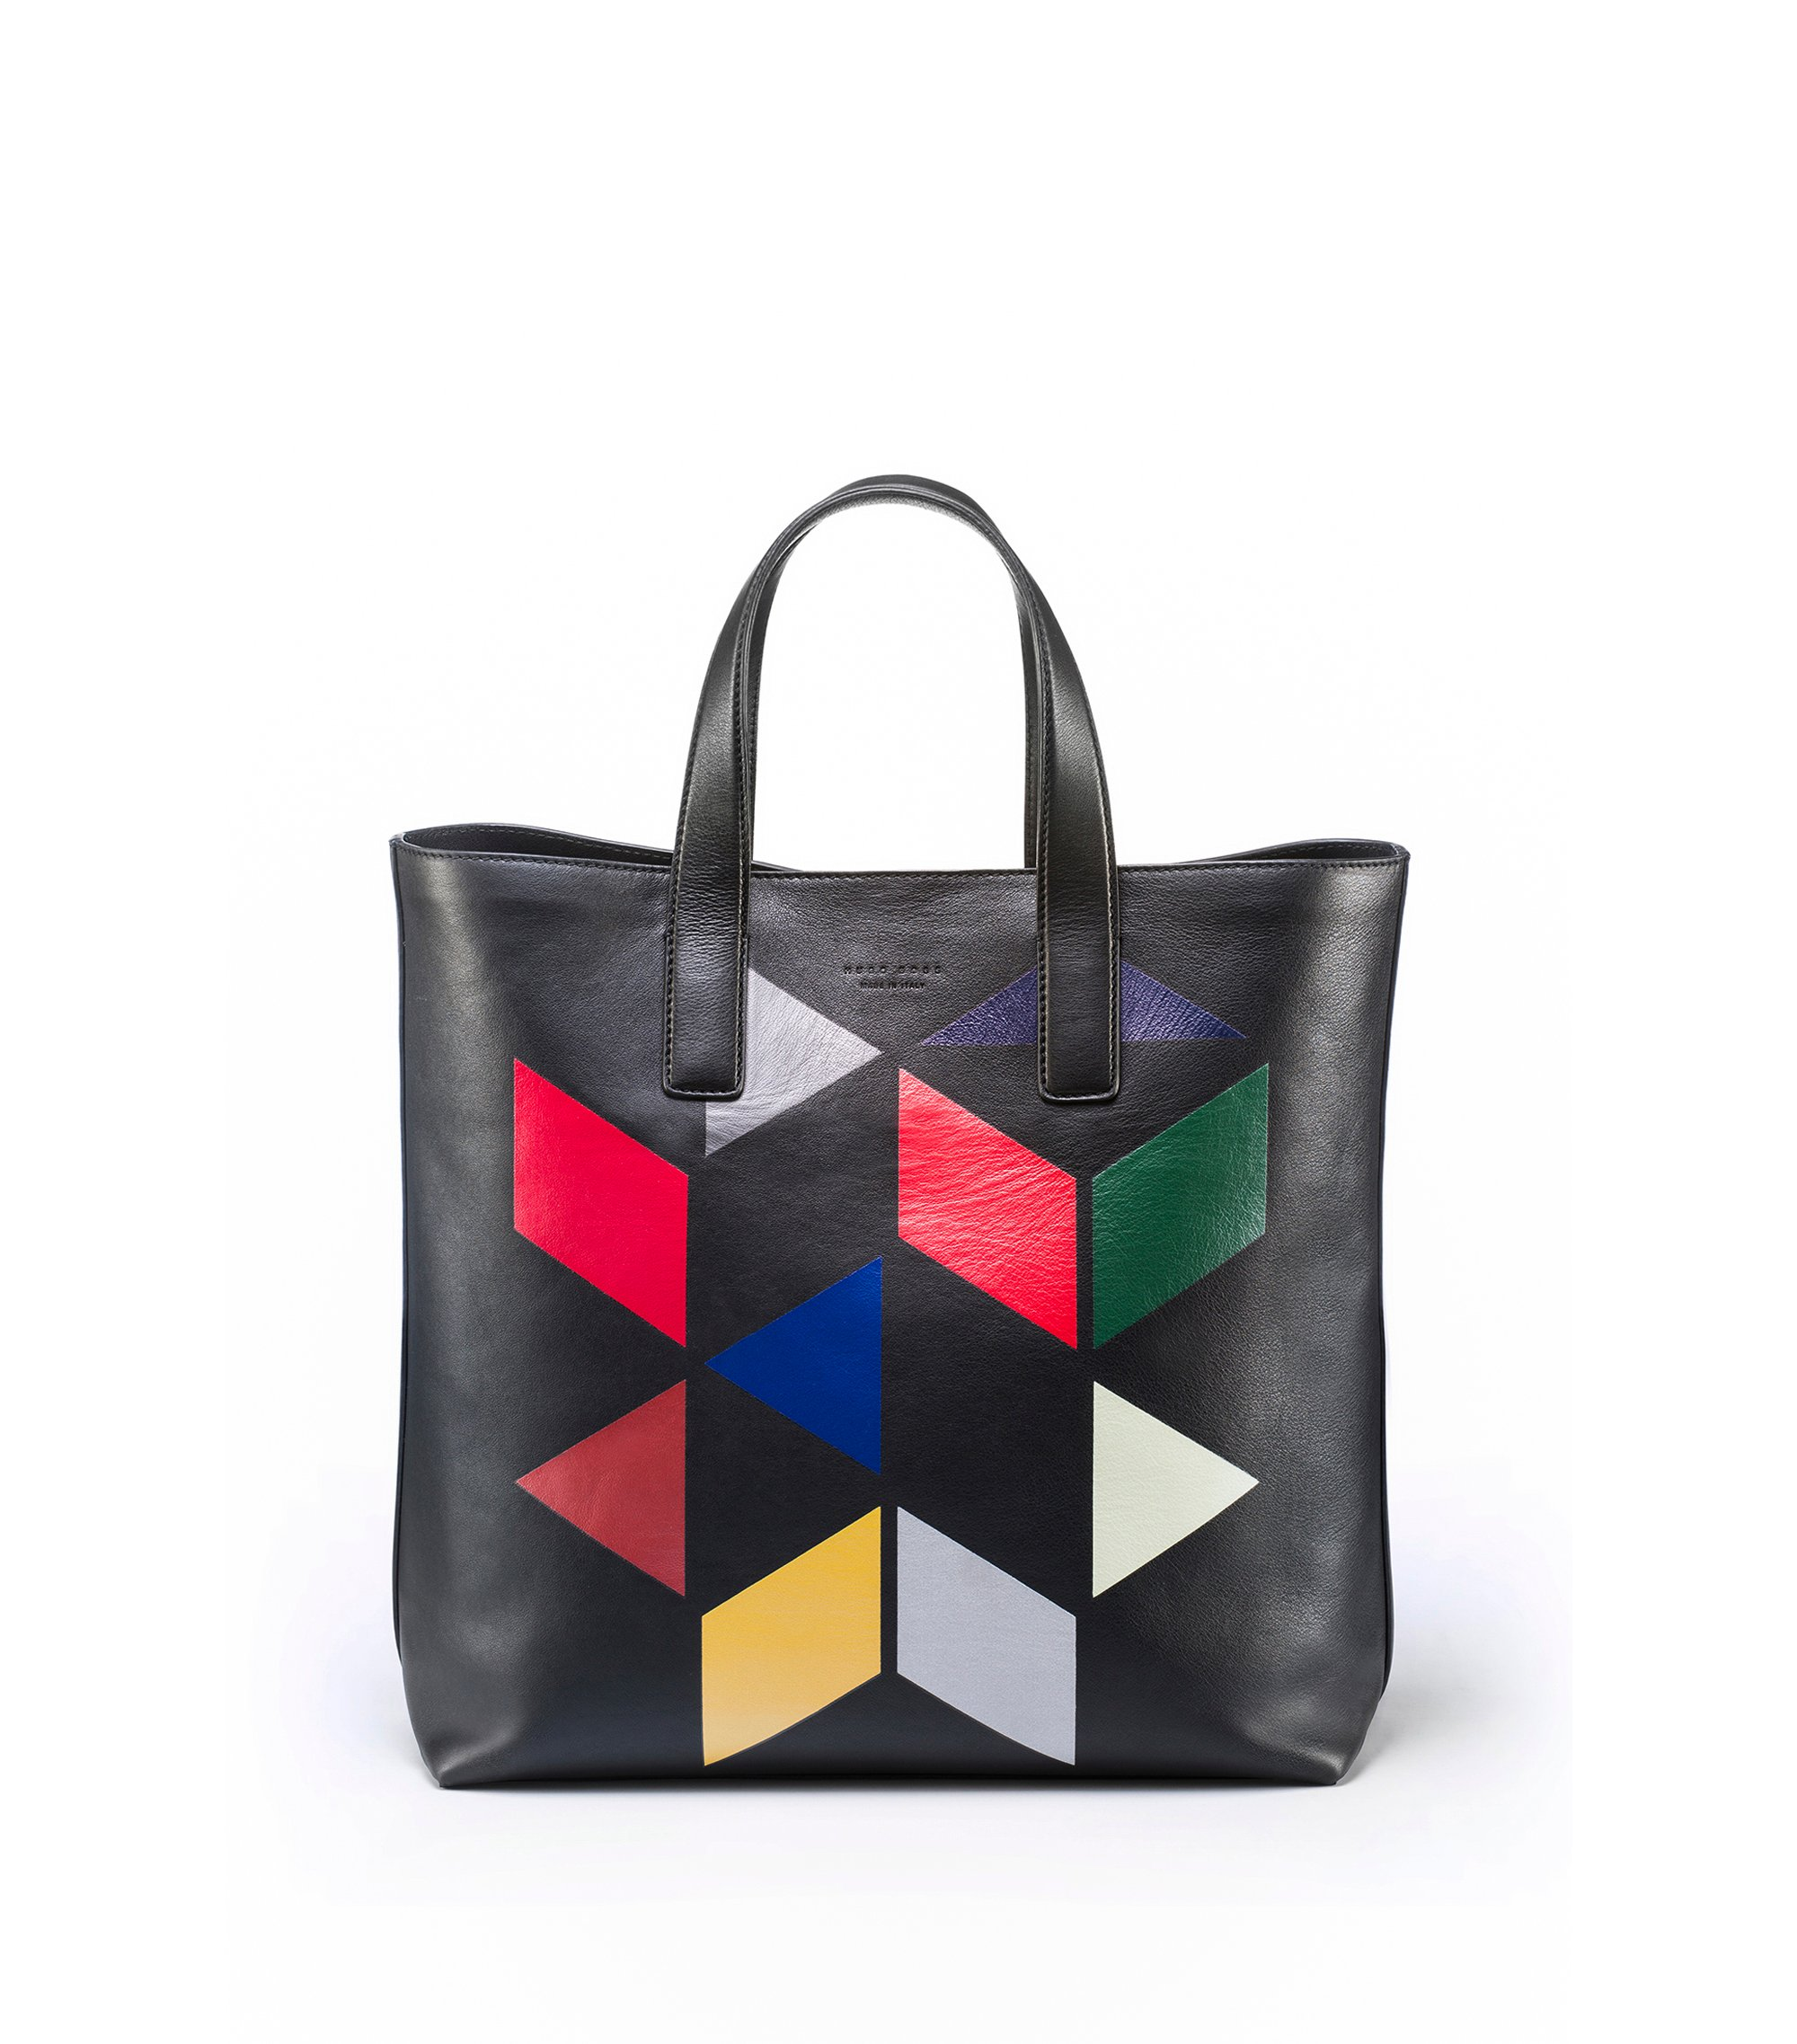 An Eames Celebration printed leather tote, Black